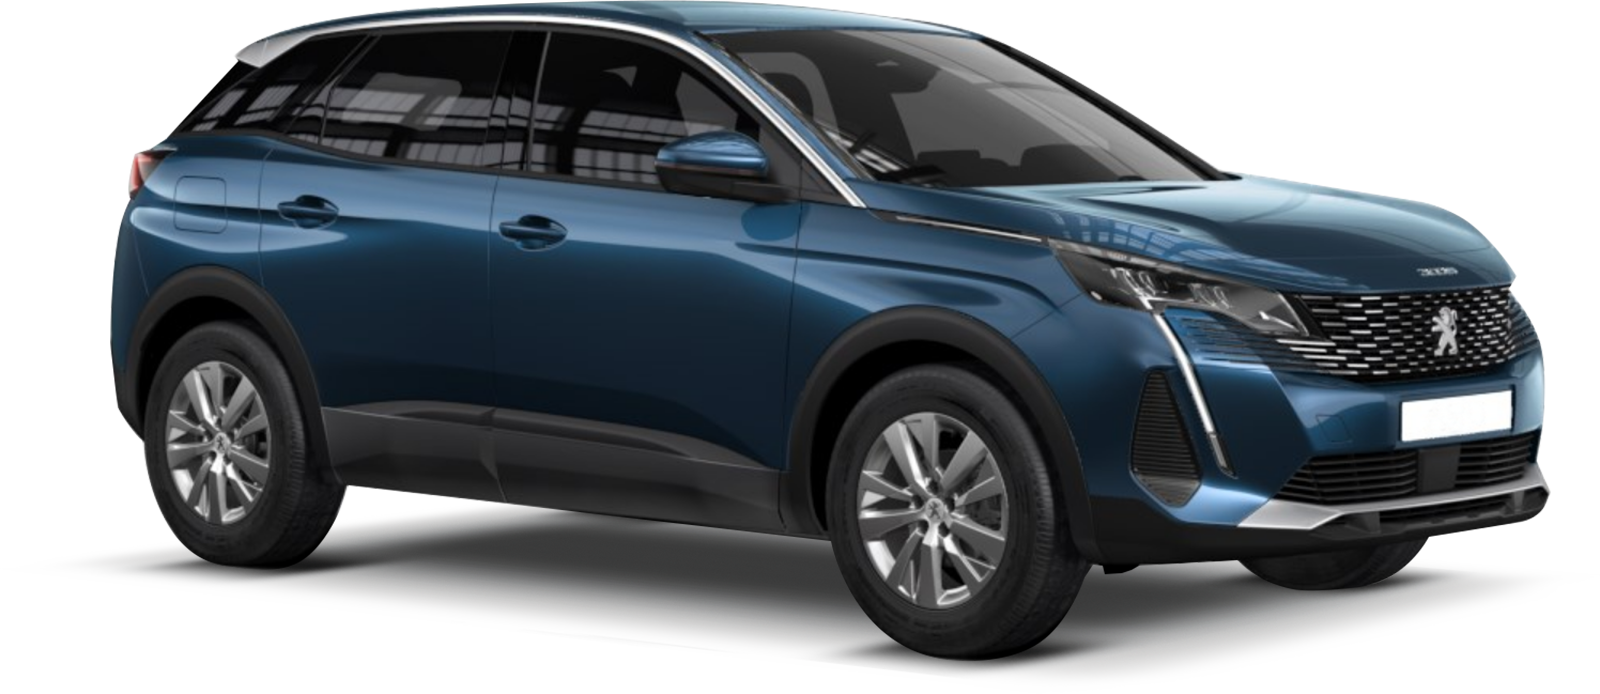 Peugeot 3008 Bluehdi 130 EAT8 S&S Active Business